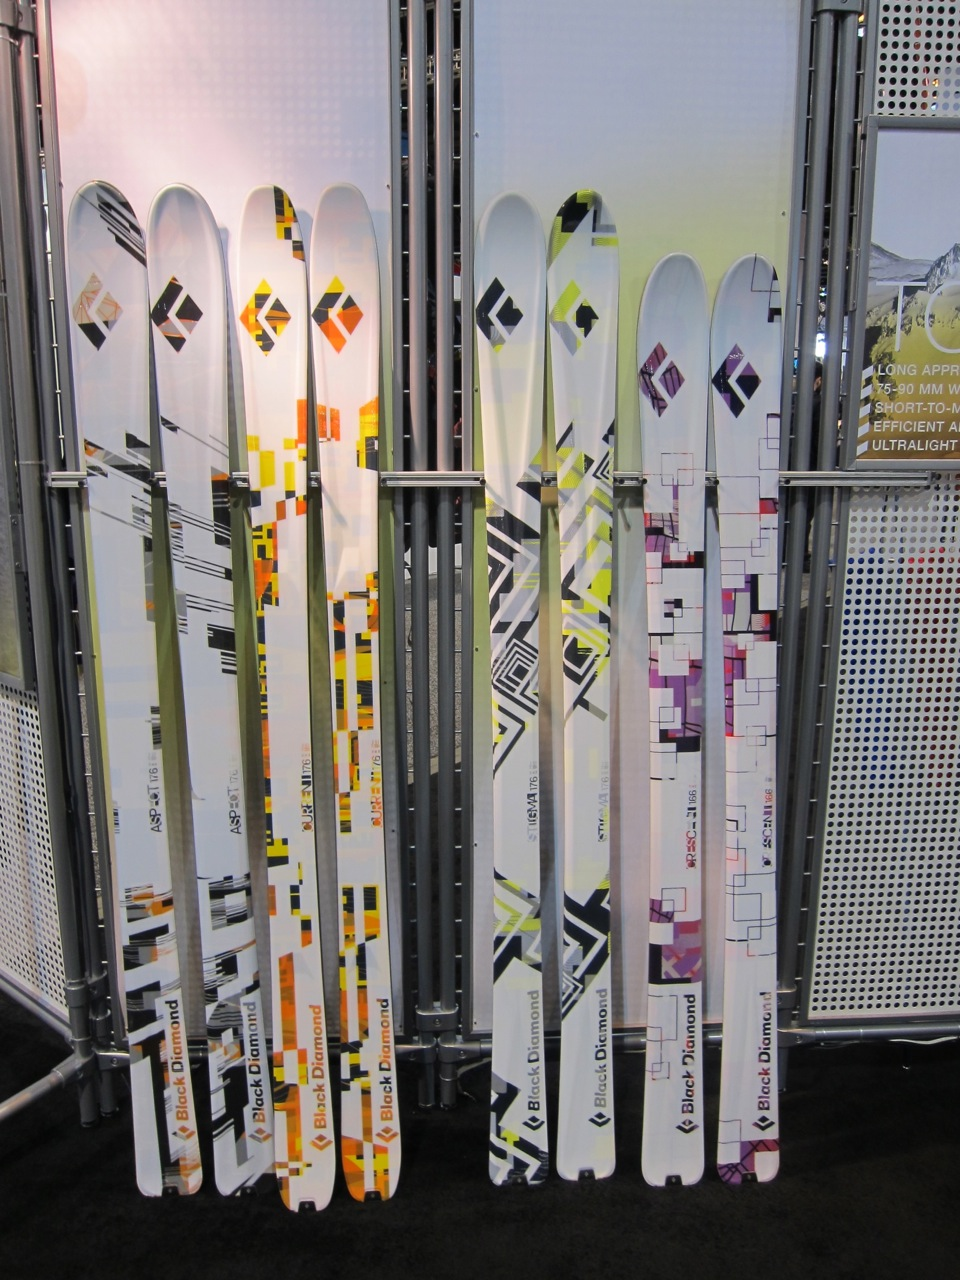 Black Diamond 1213 Skis – Sneak Peek